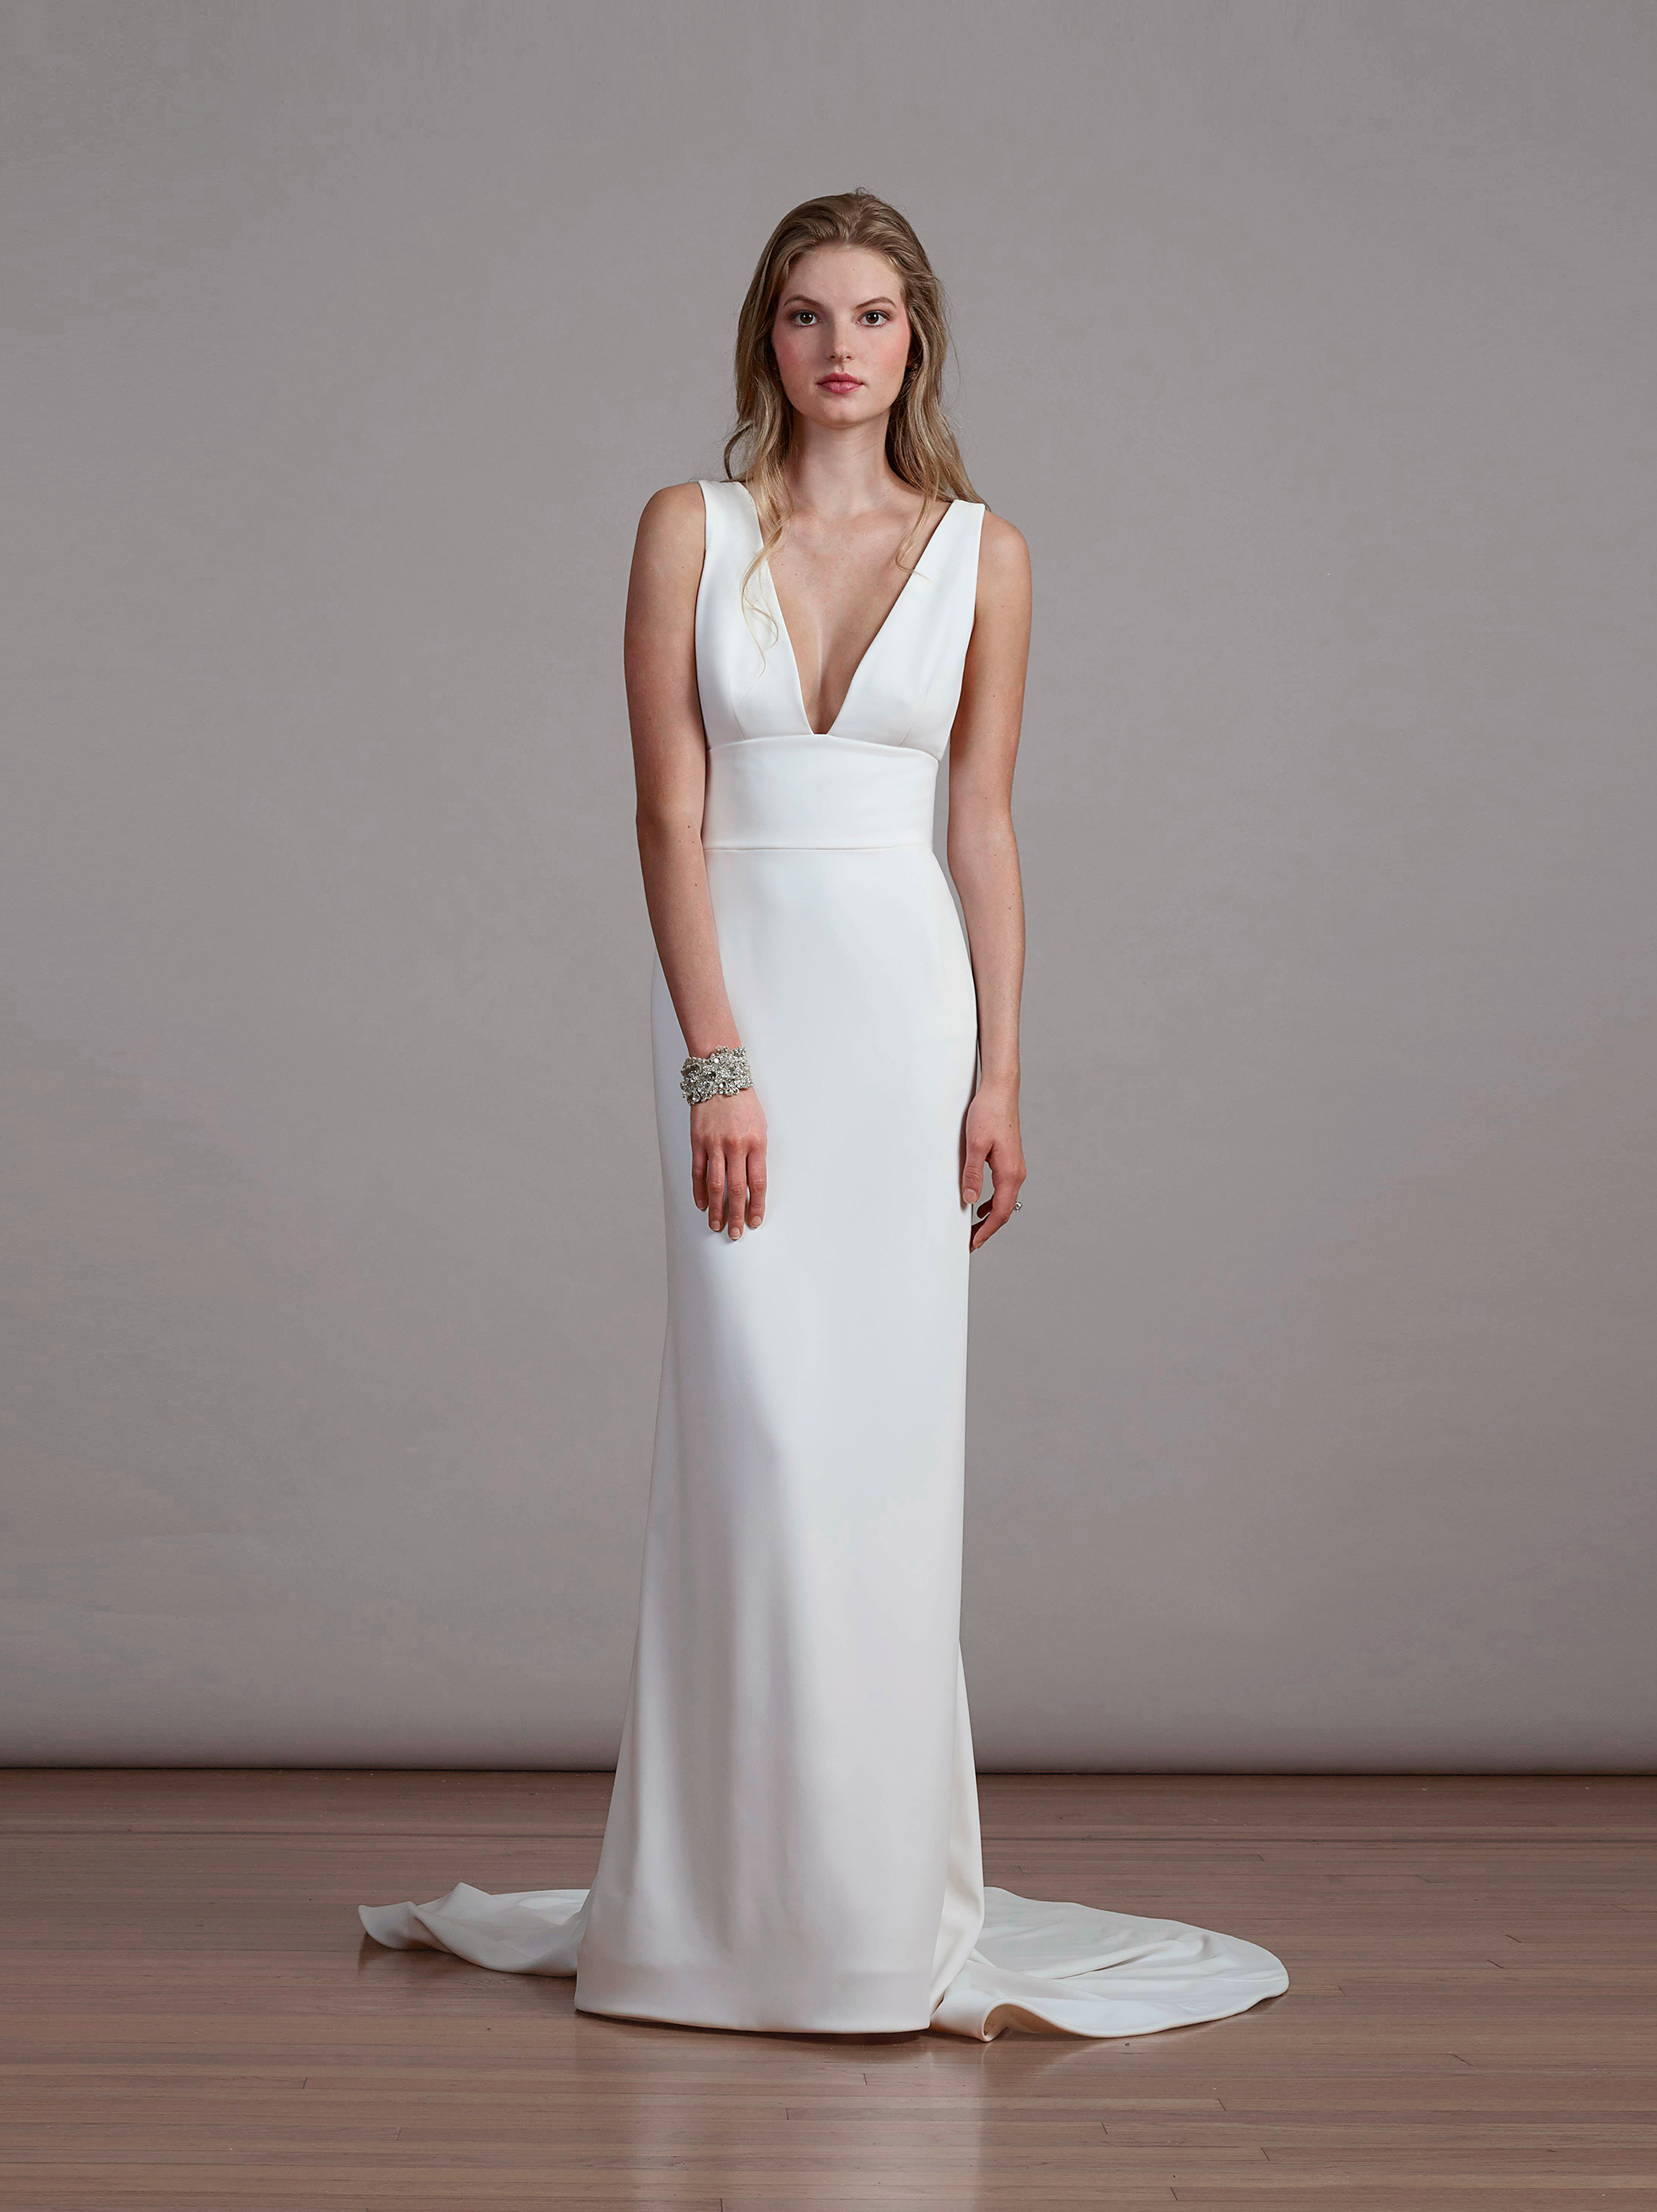 liancarlo v-neck wedding dress